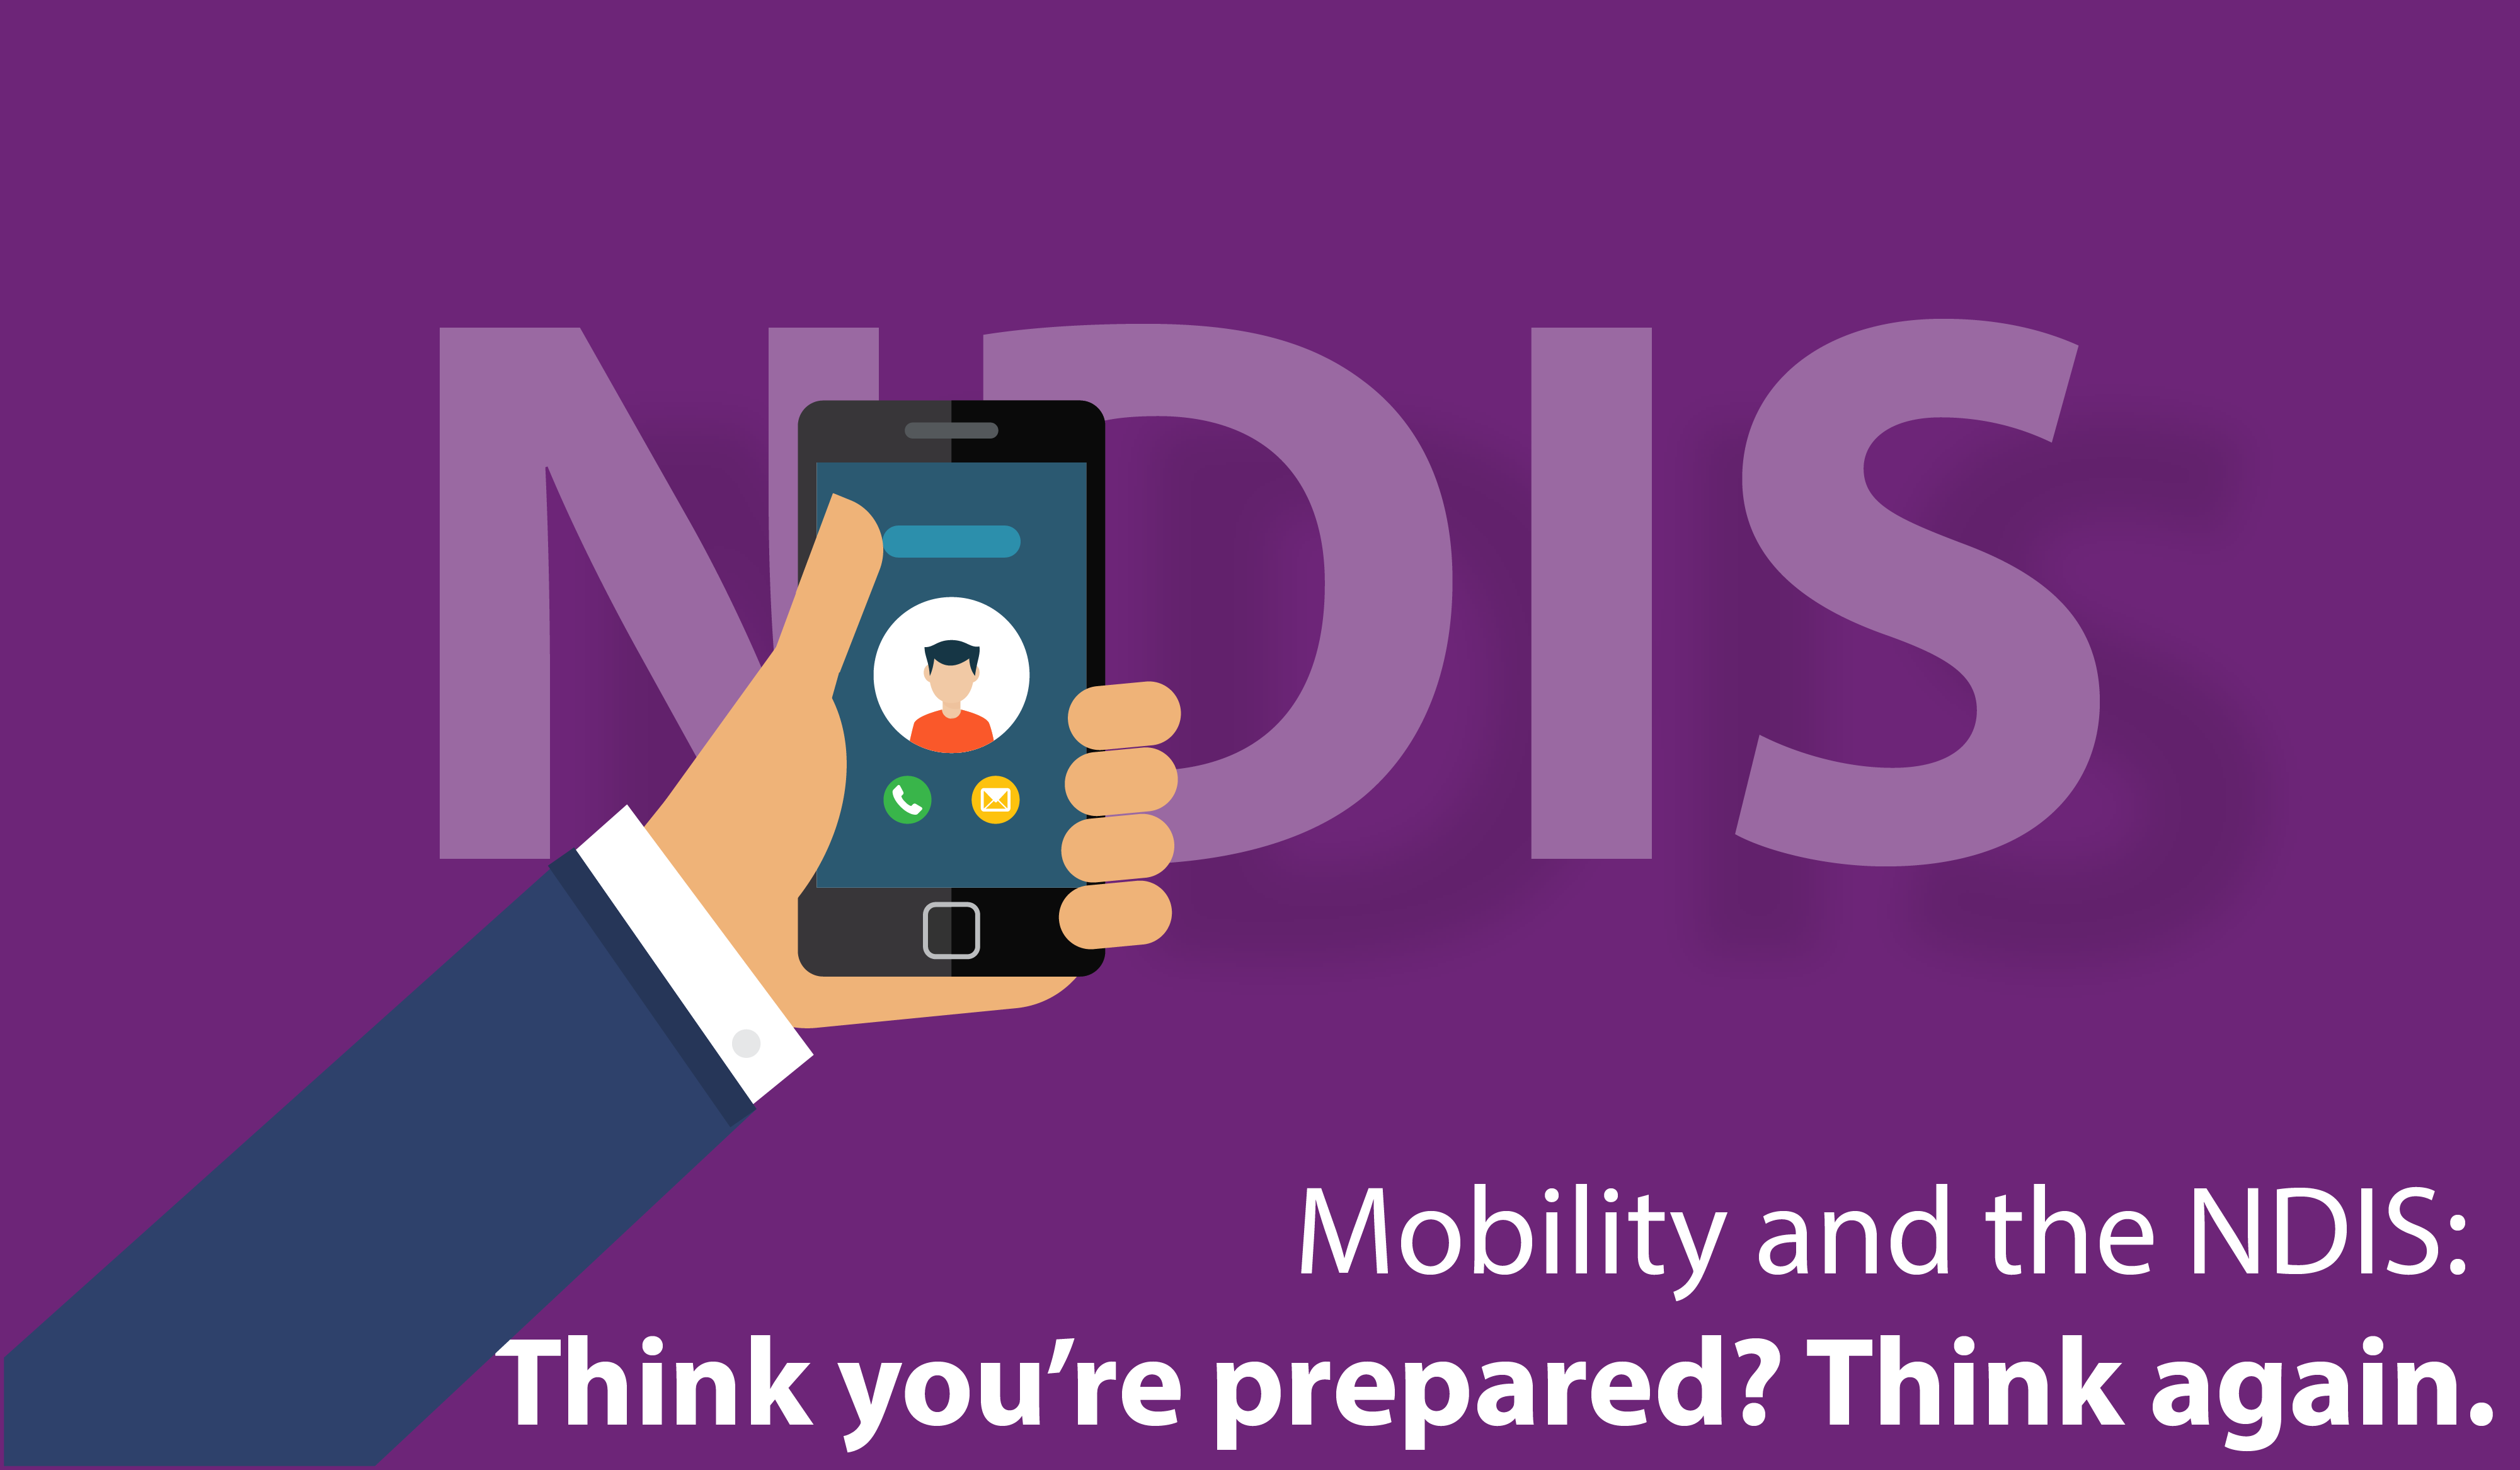 Mobility and the NDIS: Think you're prepared? Think again.